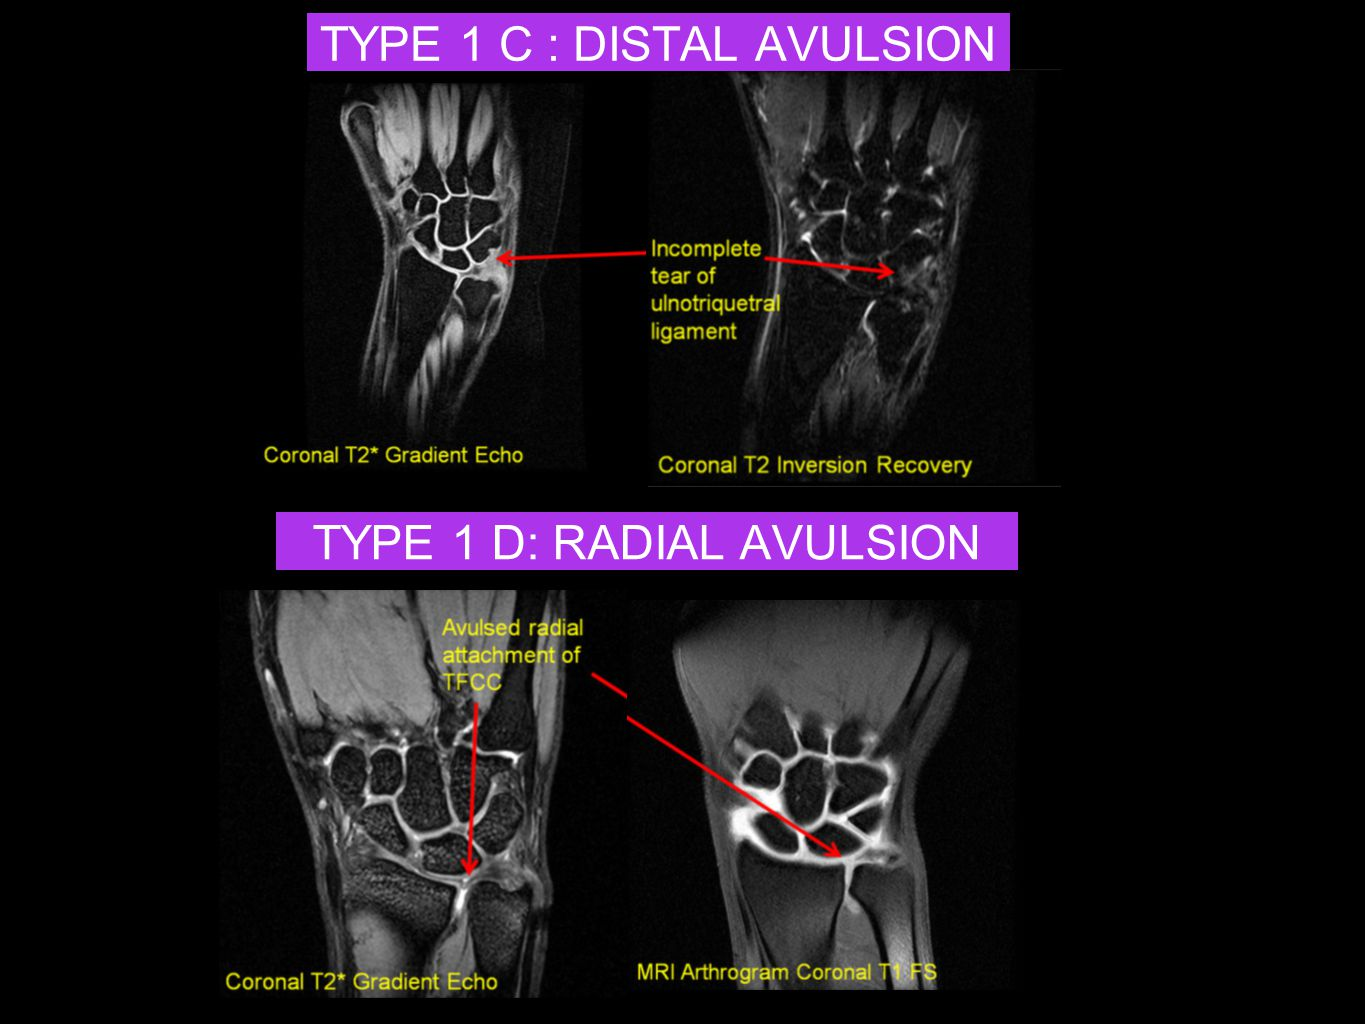 TYPE 1 C : DISTAL AVULSION